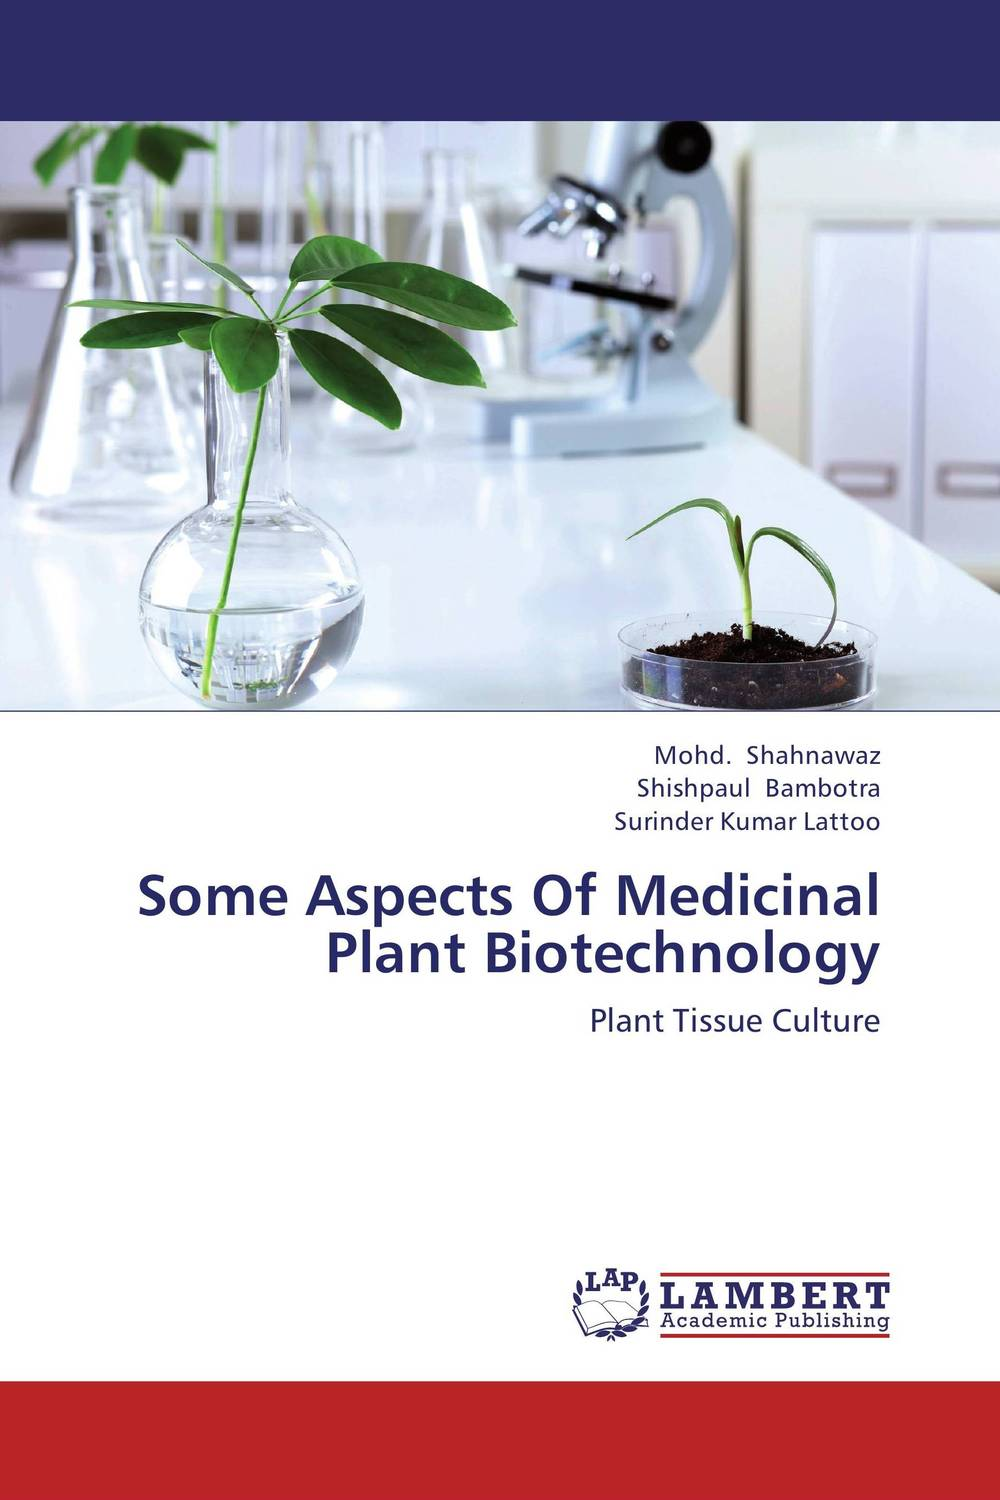 Some Aspects Of Medicinal Plant Biotechnology studies on two medicinally important plants